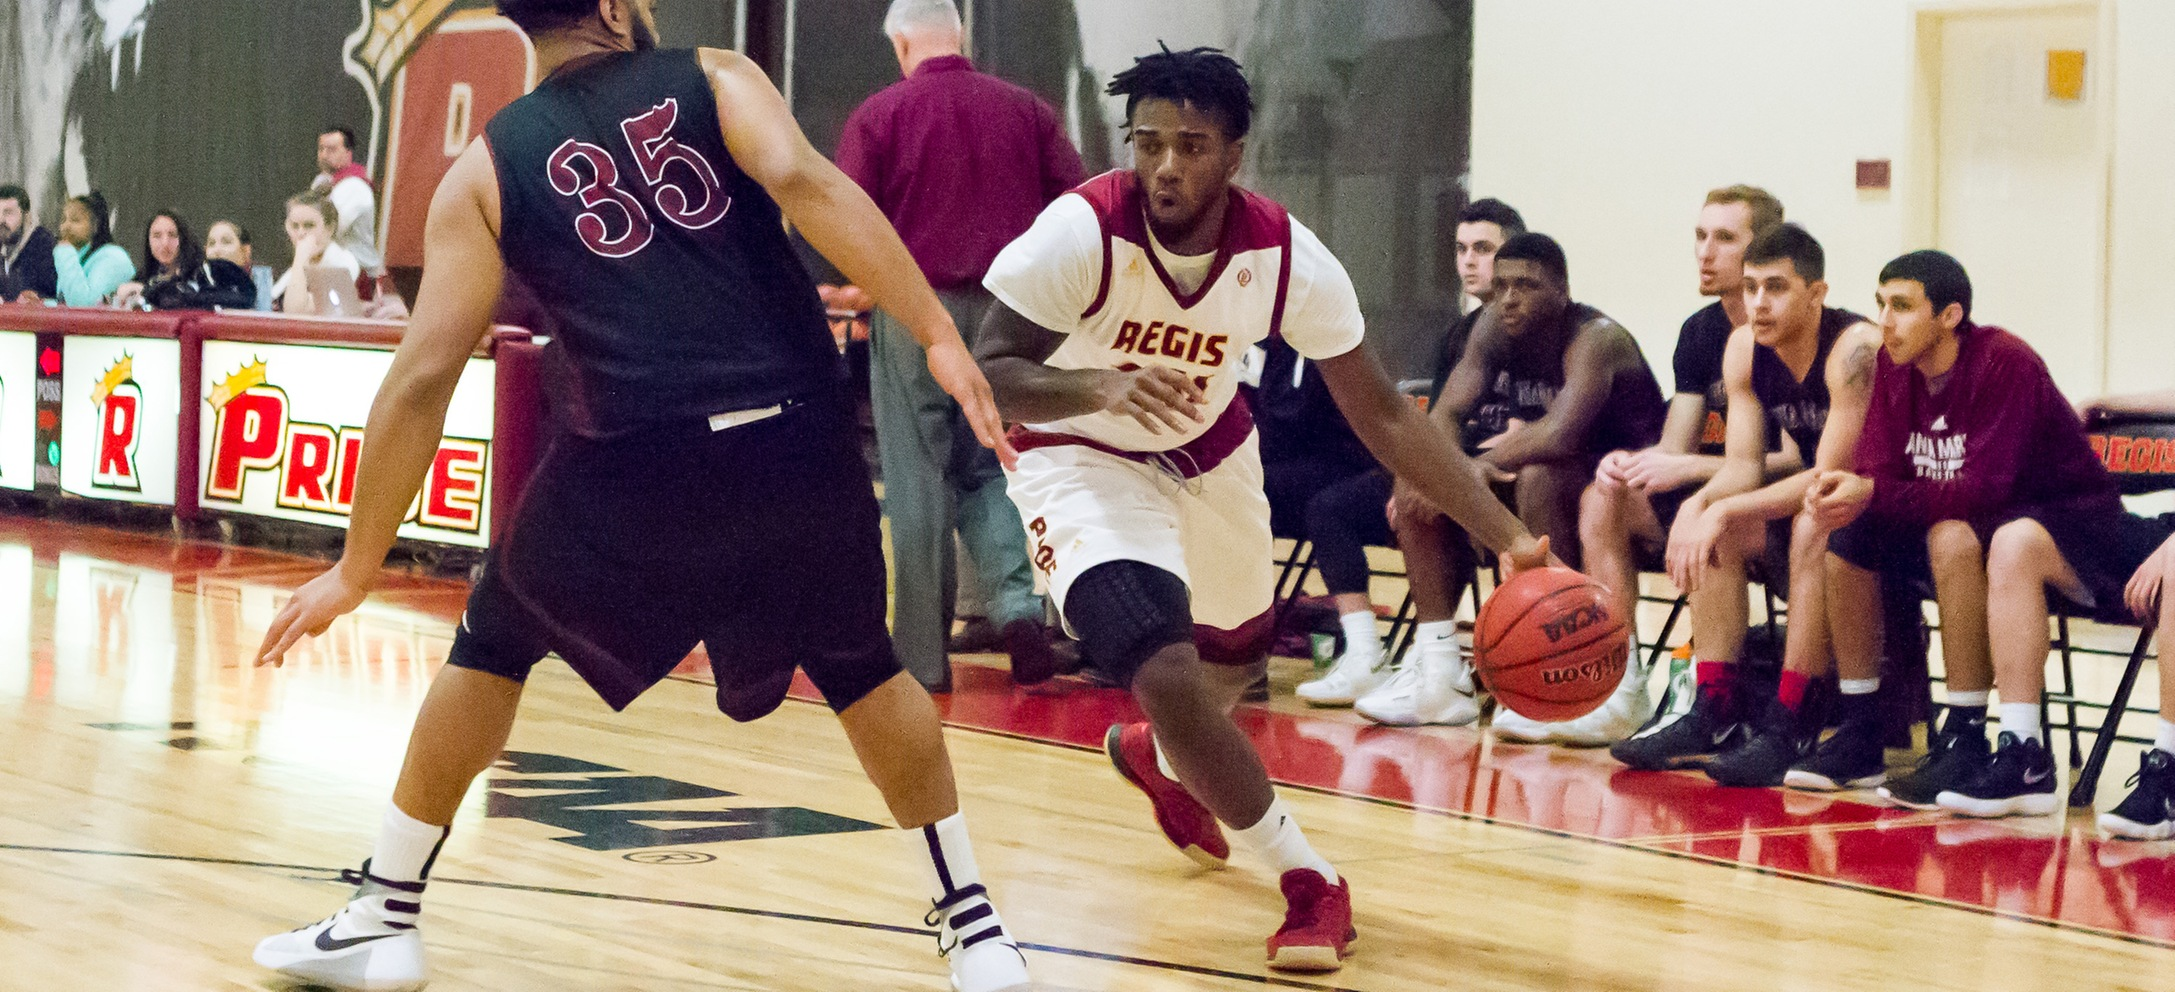 Blistering Second-Half Shooting Lifts Men's Basketball By Mount Ida